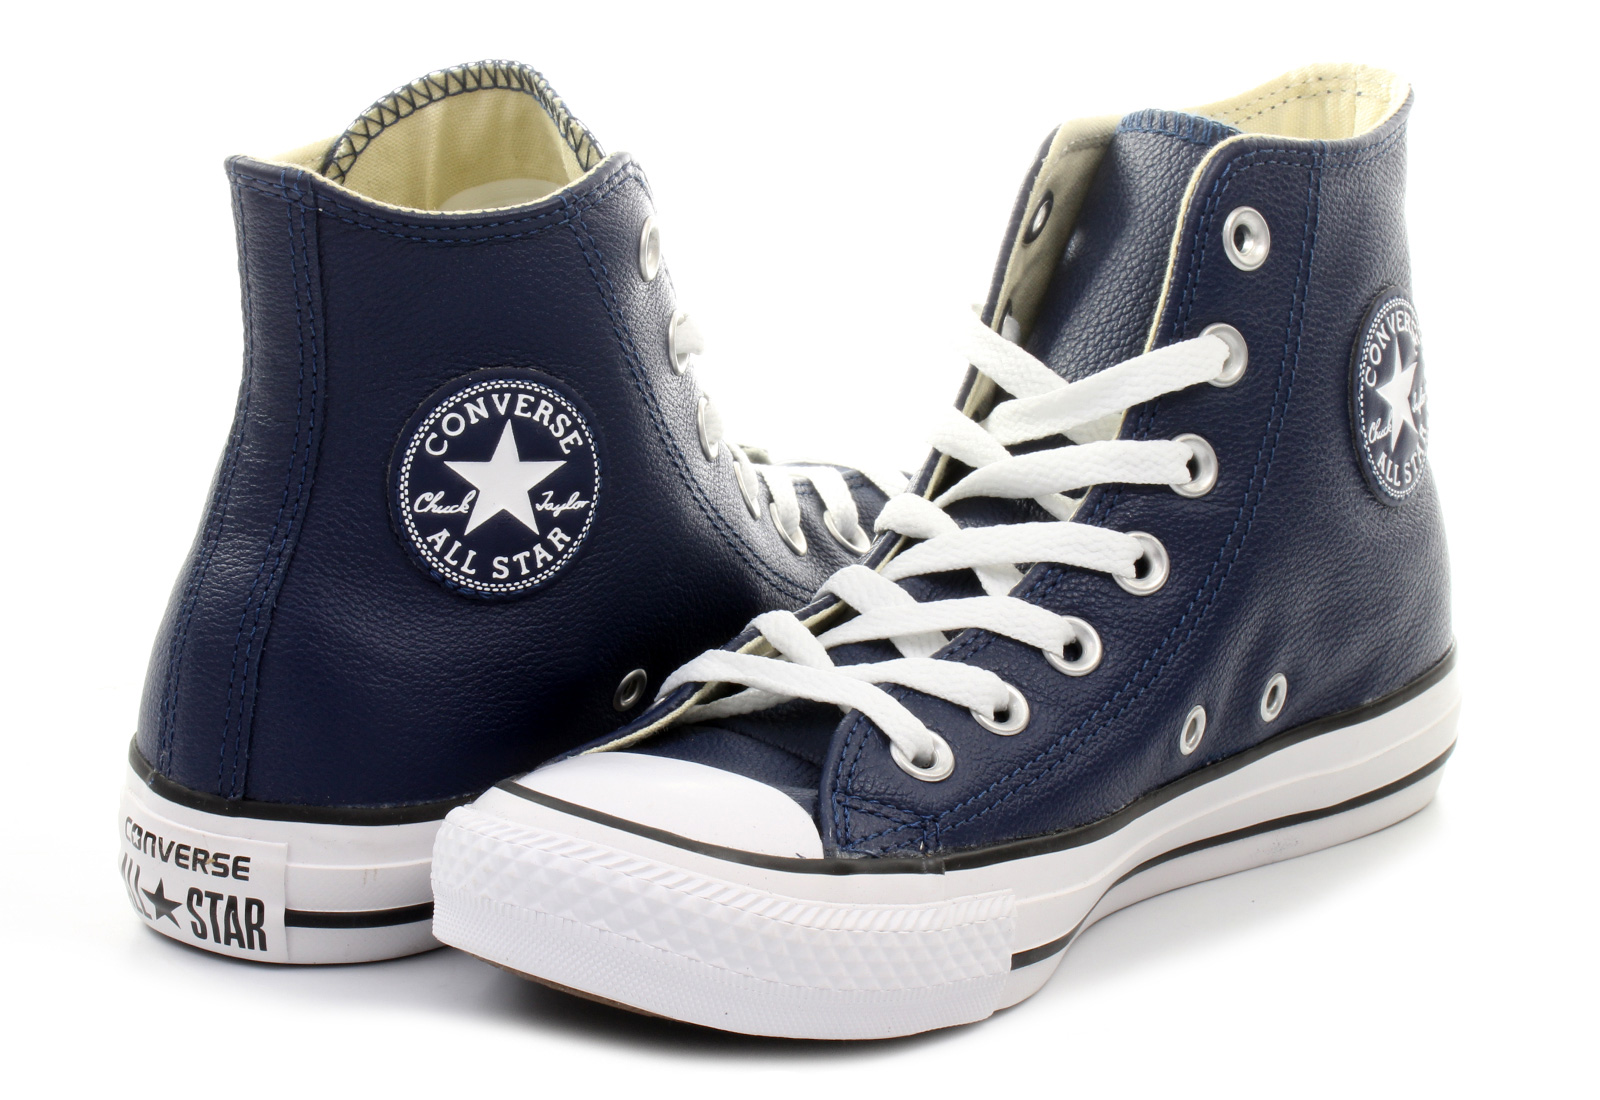 Converse Tornacipő - Chuck Taylor All Star Leather Hi - 149490C ... bbb114d05d